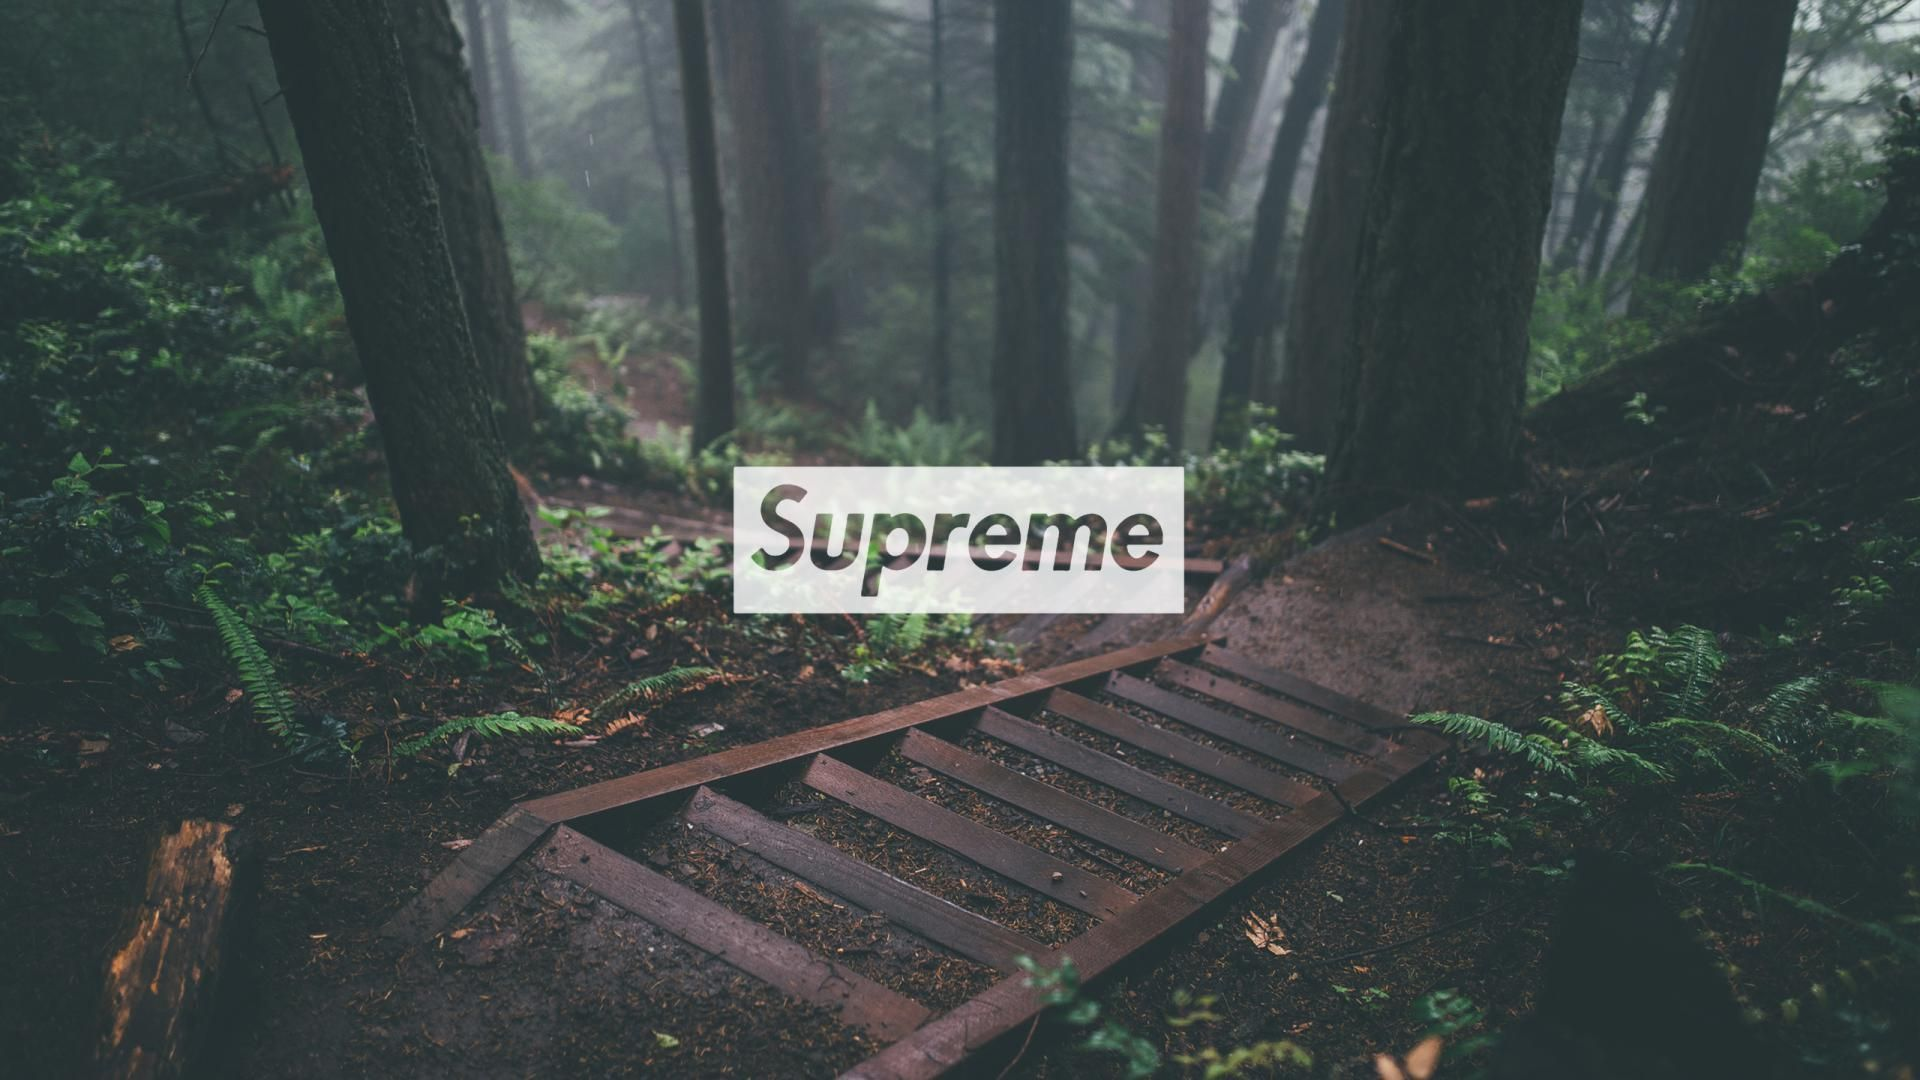 1280x853 hypebeast wallpapers wallpaperpulse